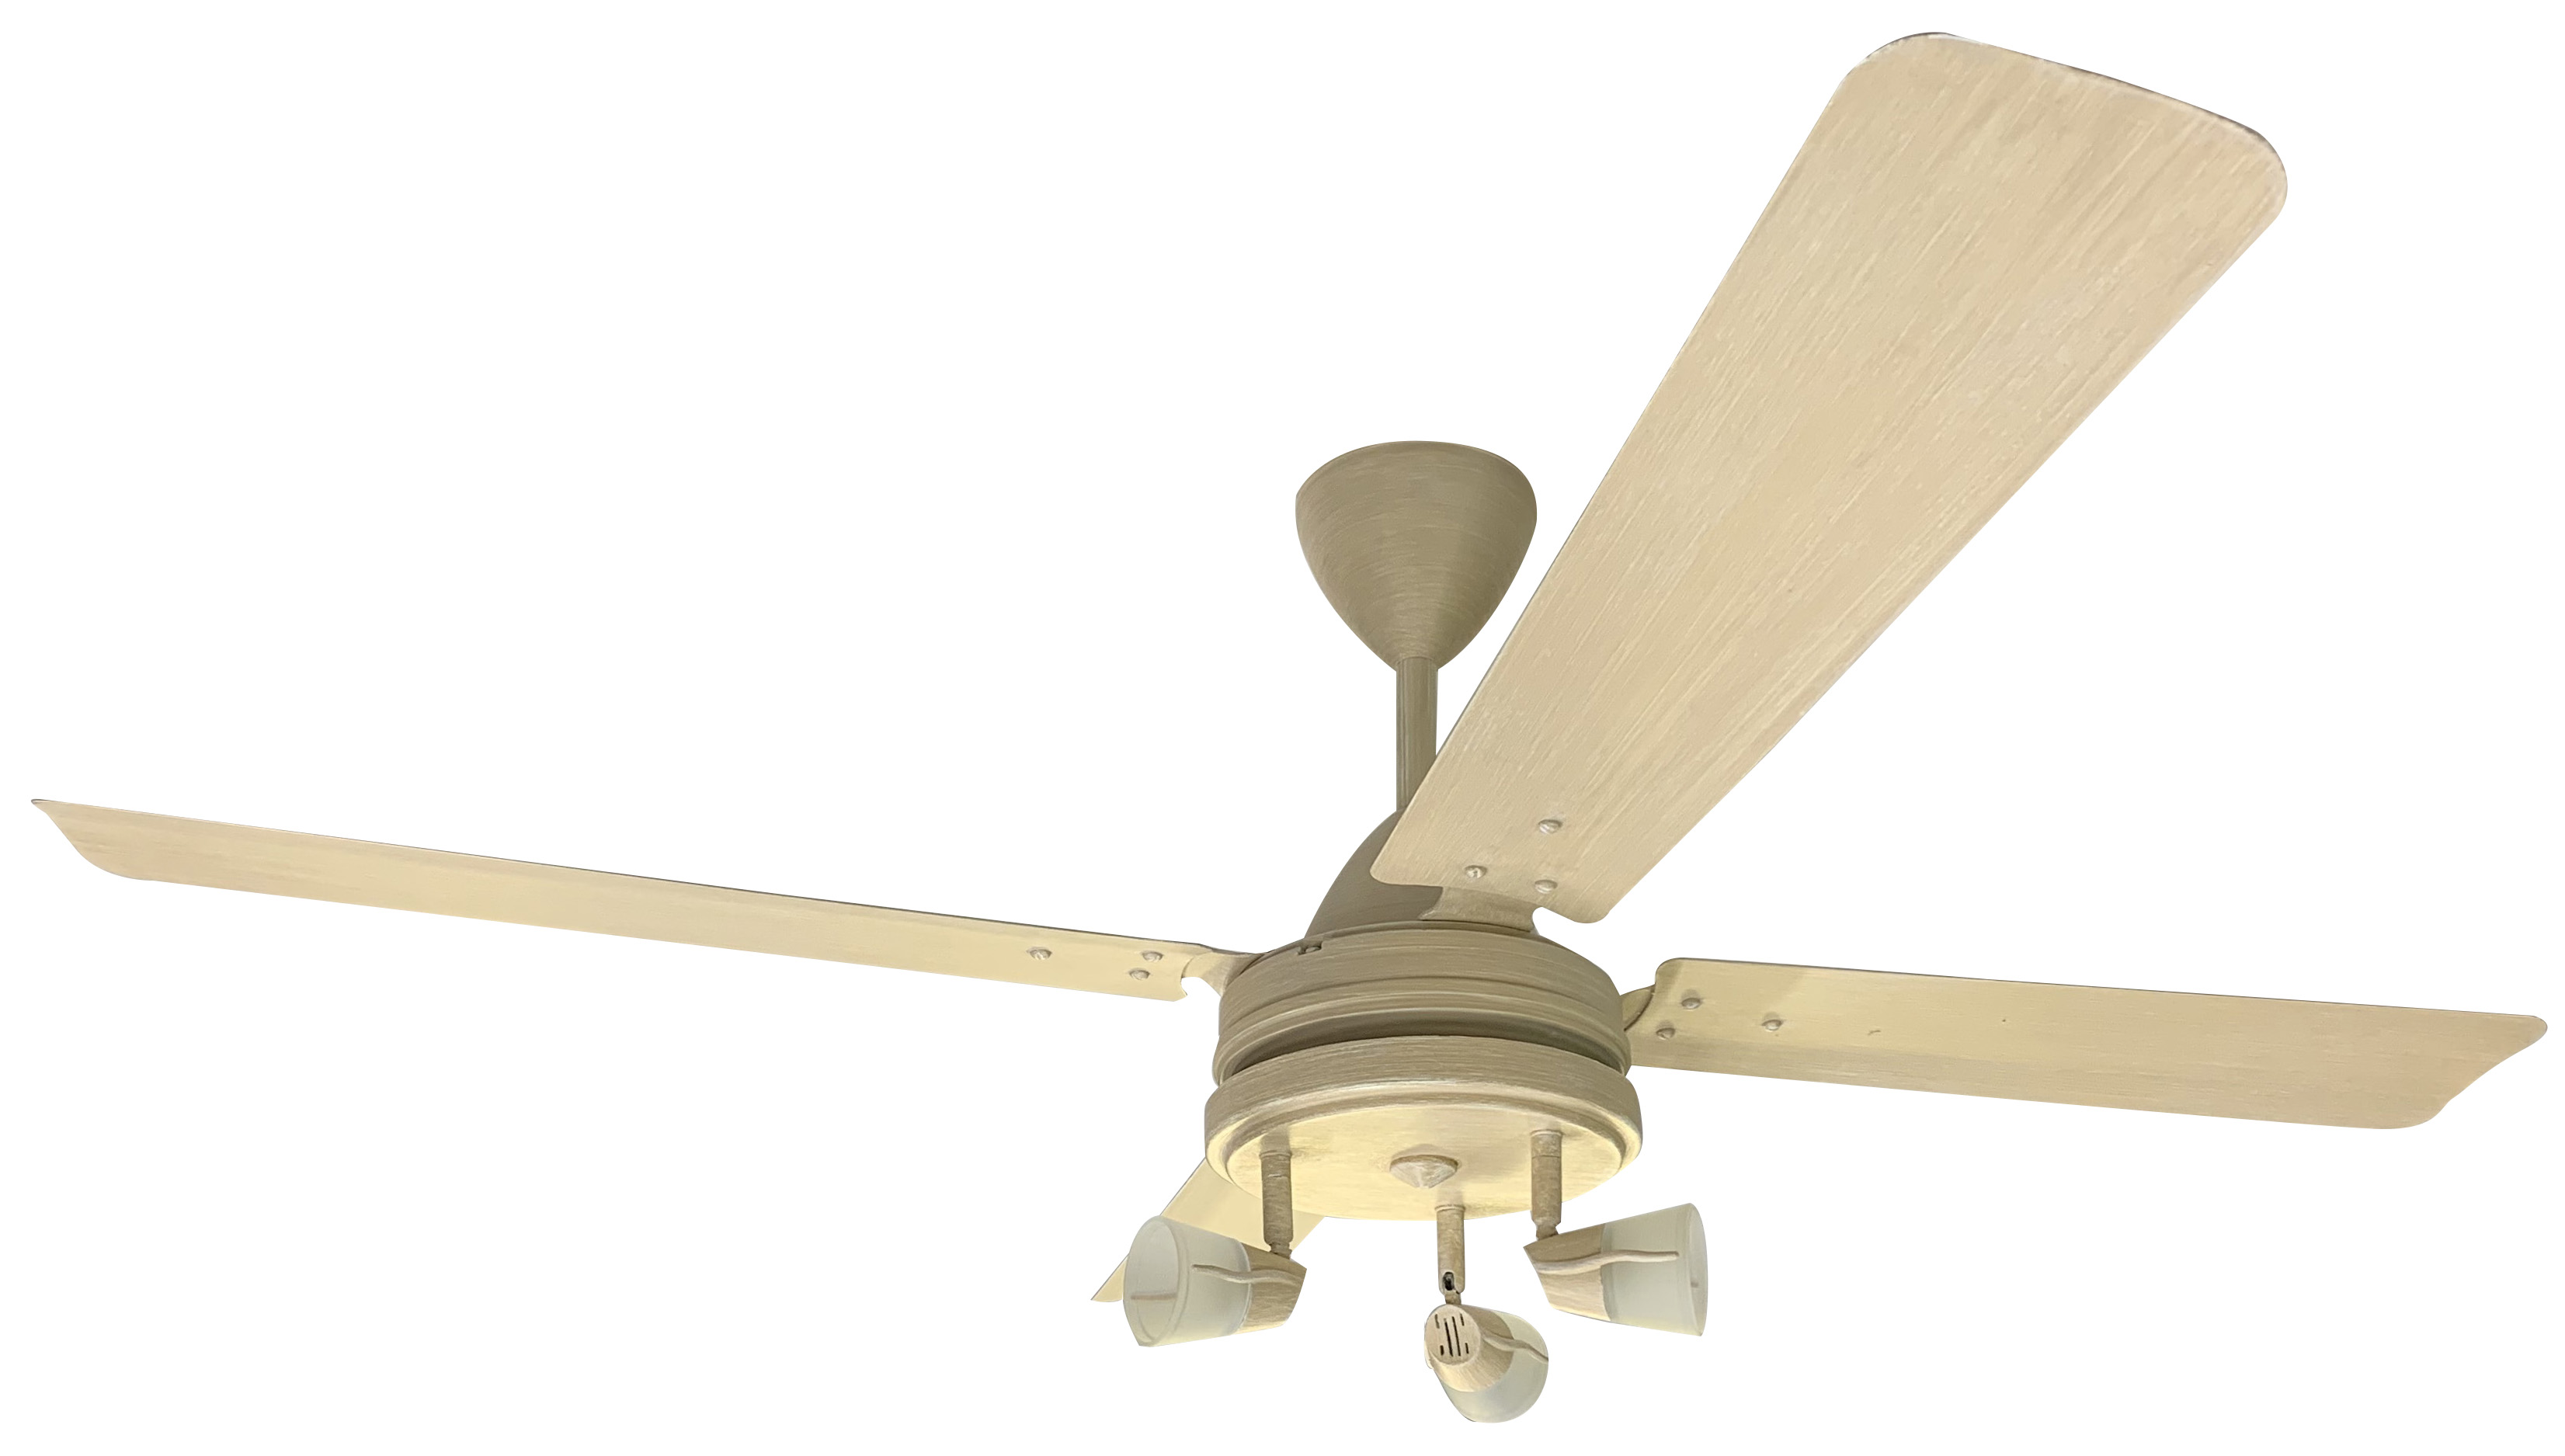 Motor High Breeze Biscuit Blade Aluminium 4 1200mm Biscuit +Bella.jpg